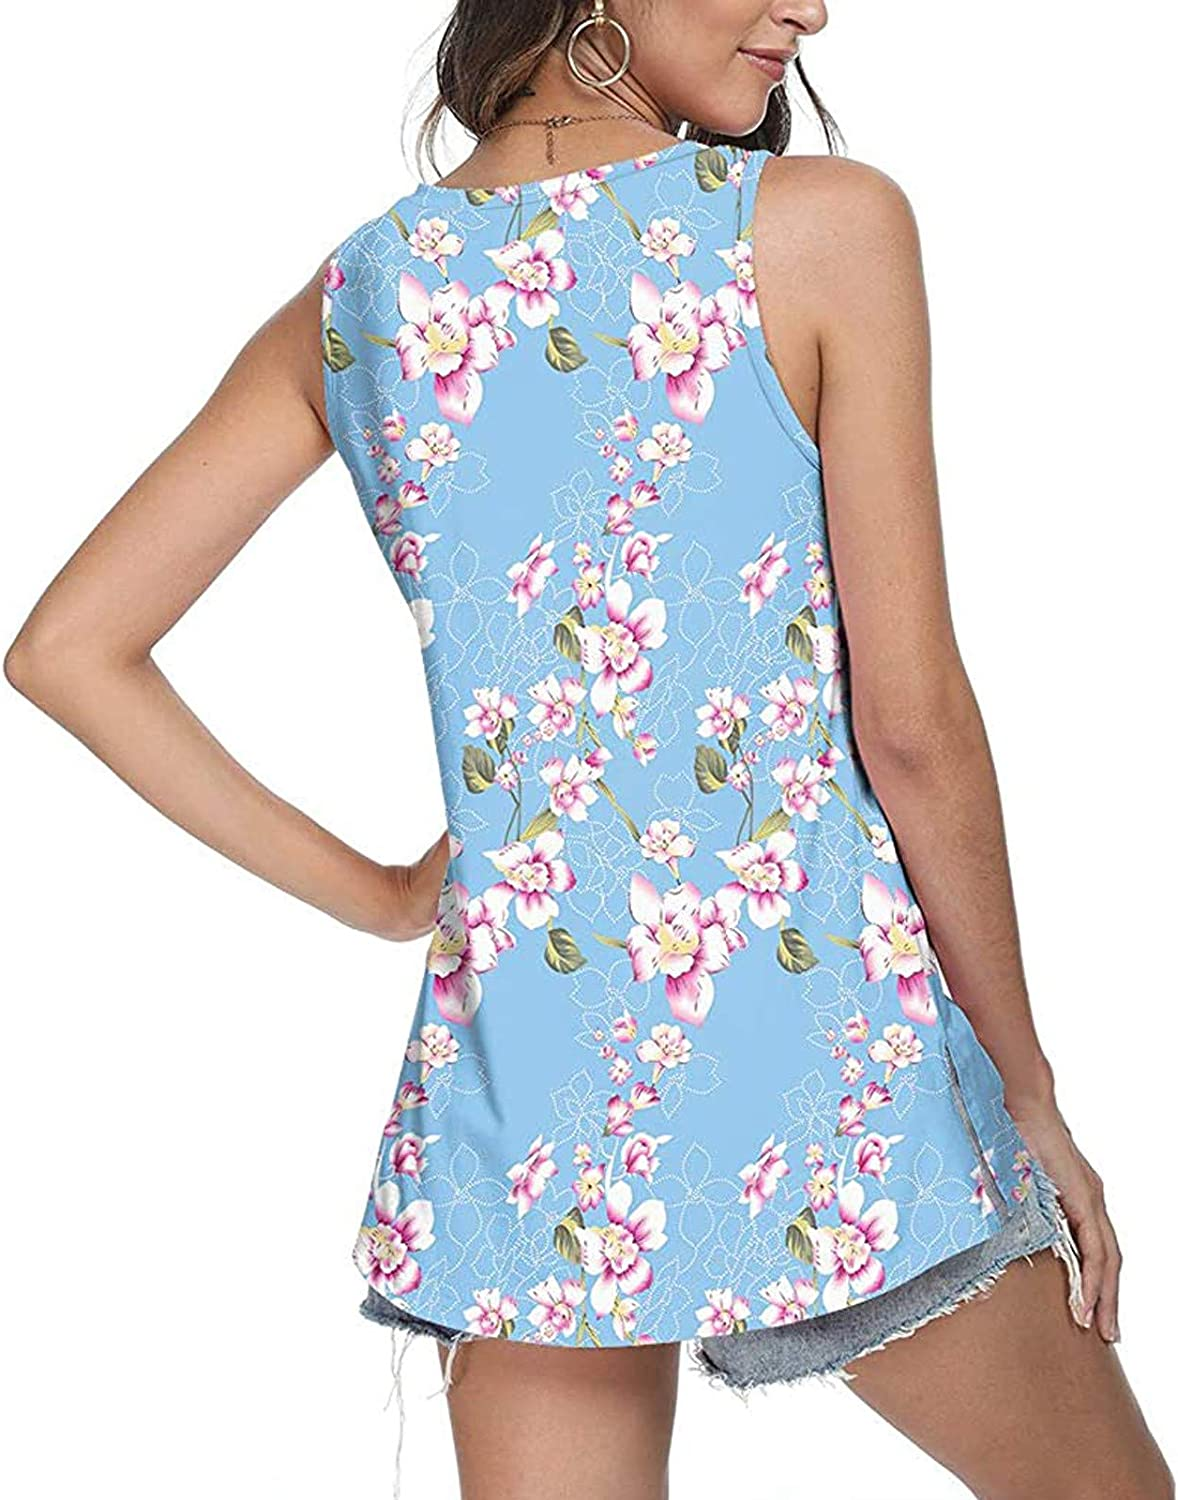 Gerichy Summer Tank Tops for Women, Womens Summer Tops Casual V Neck Tank Tops Loose Fit Sleeveless Shirts Tees Tops